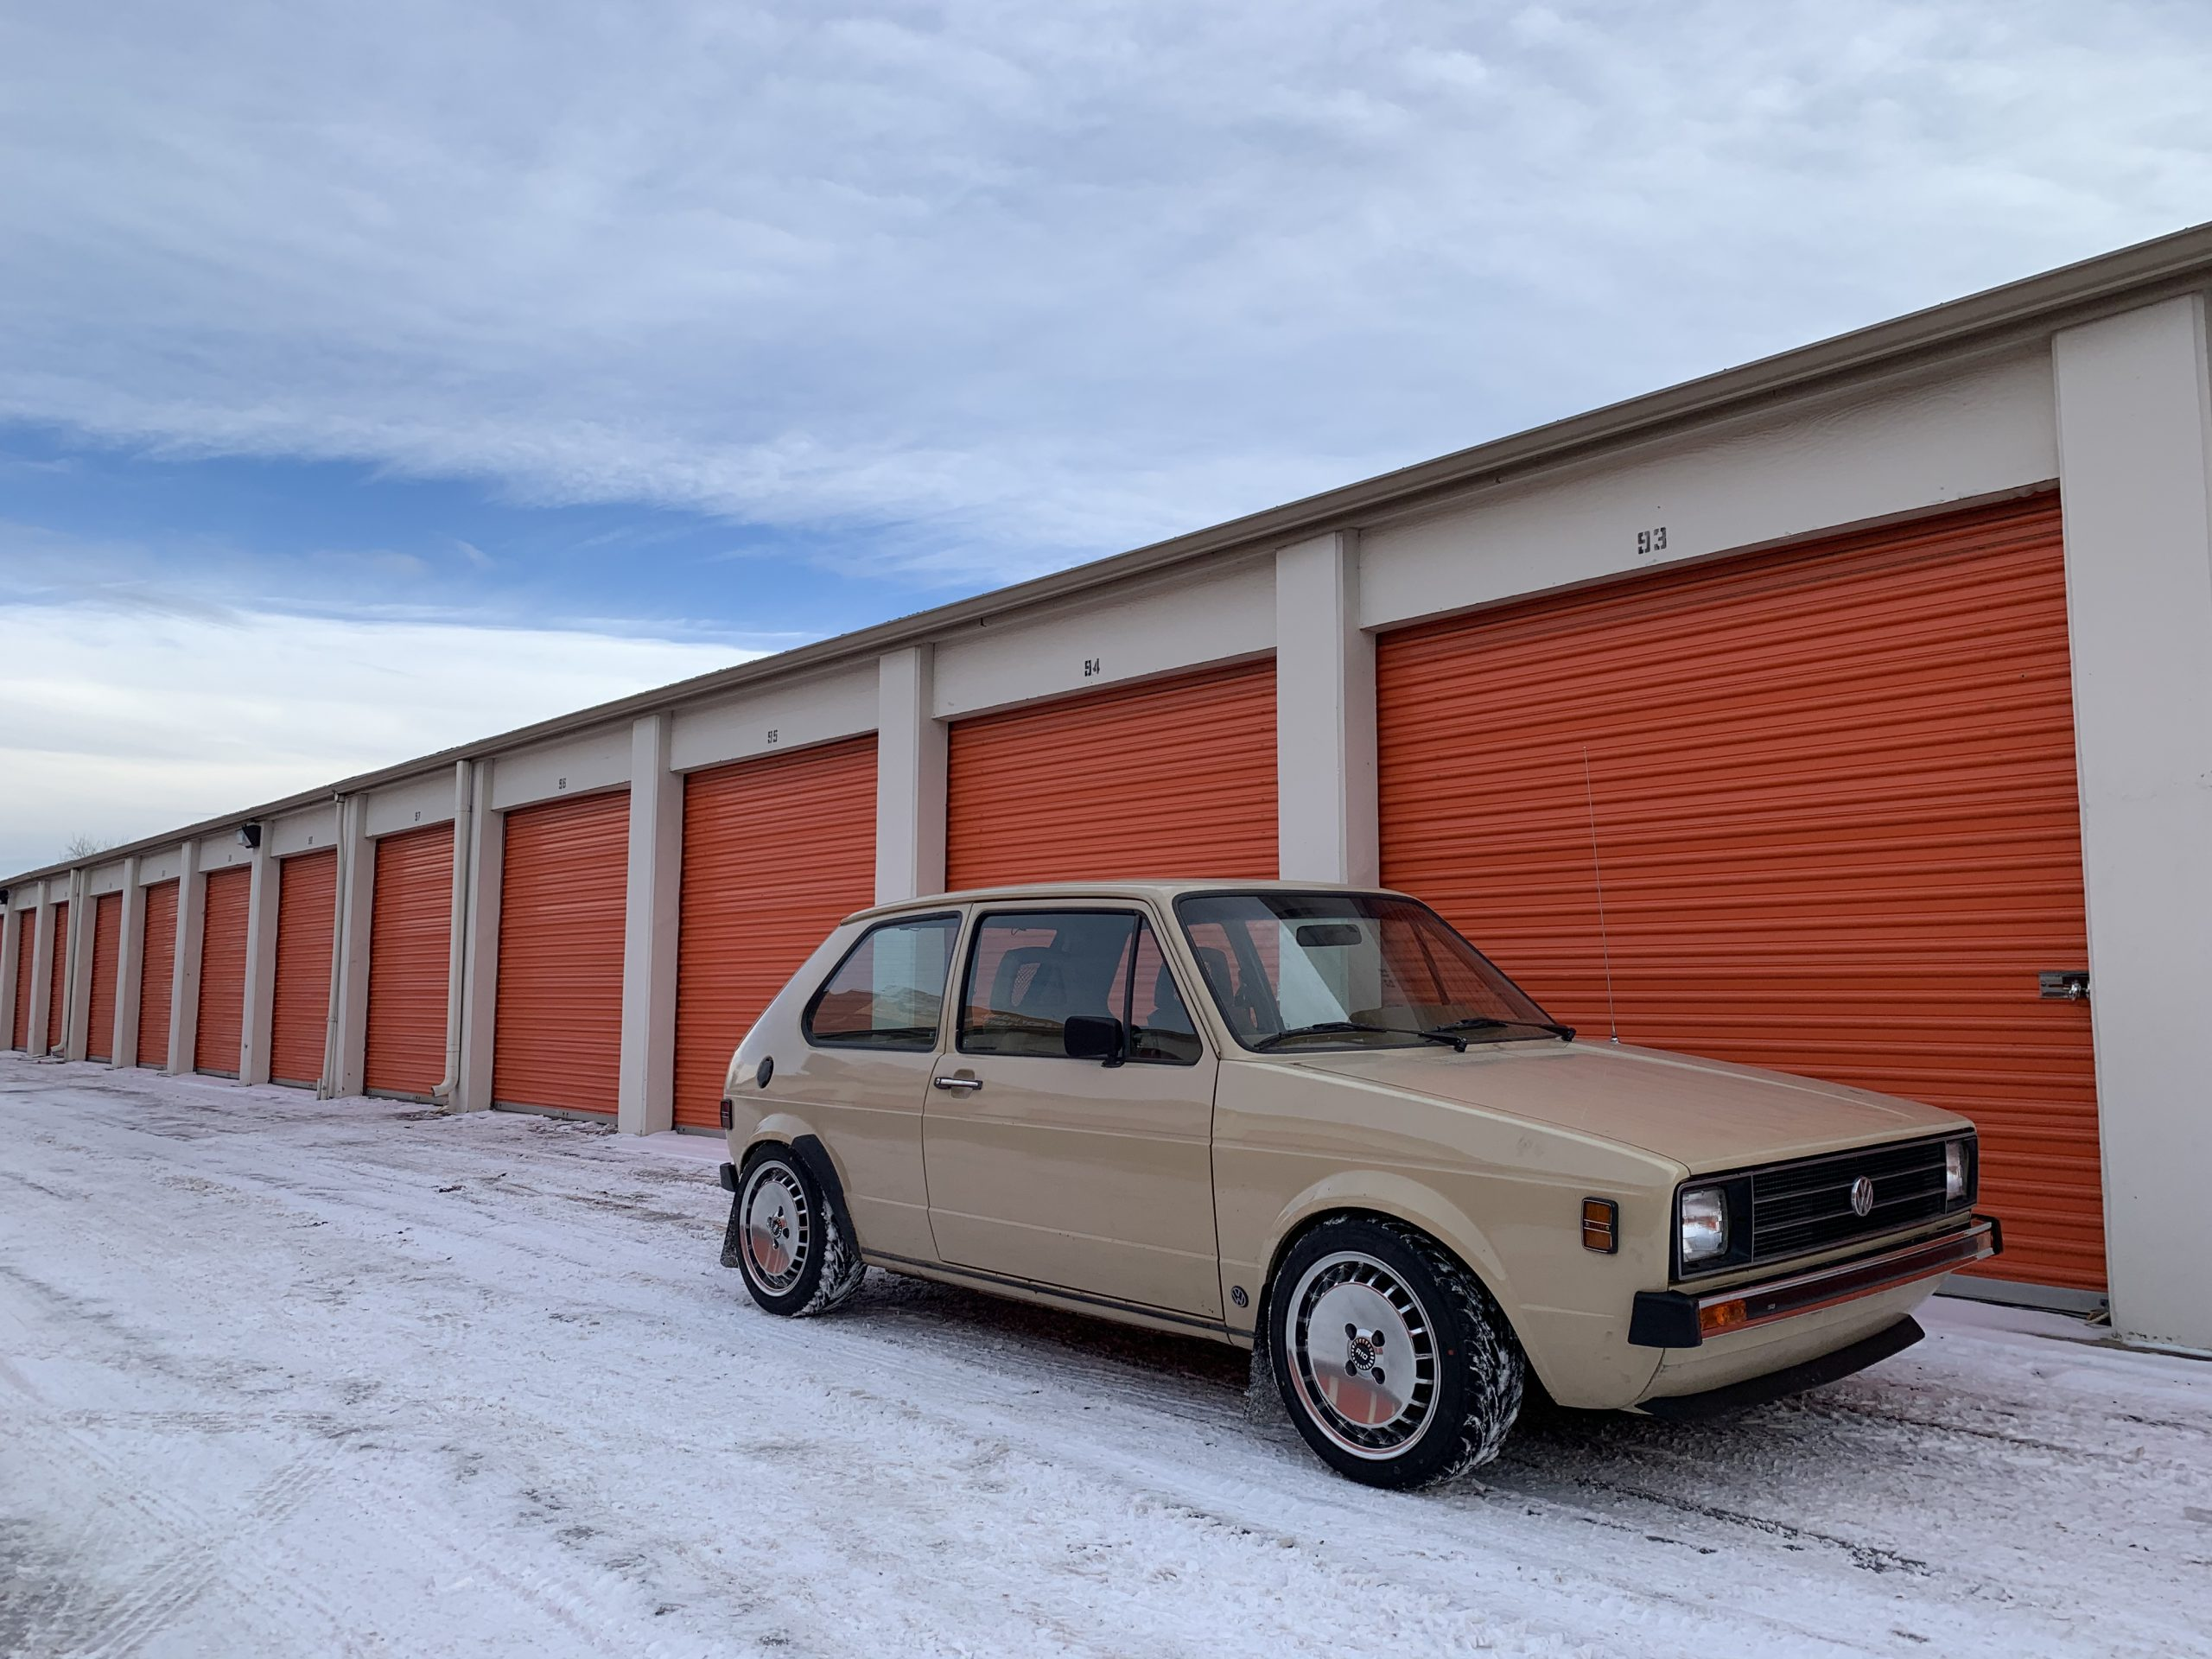 1980 VW Rabbit TDI swap front Dec 14, 3 38 45 PM